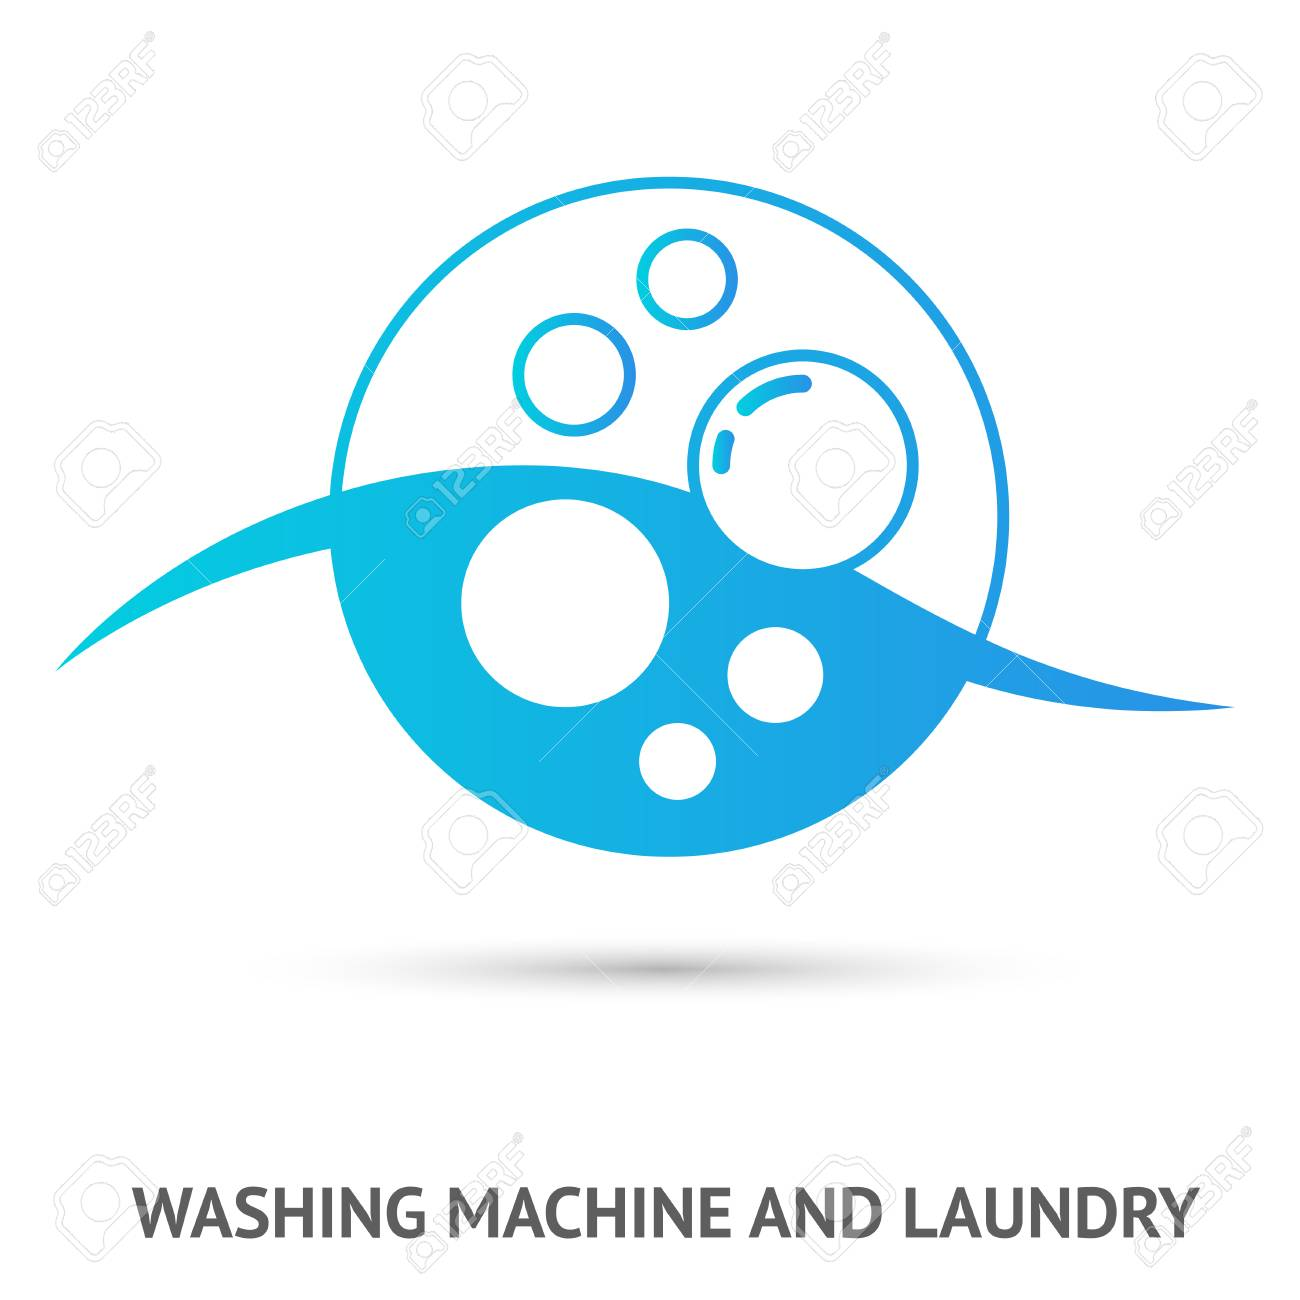 washing machine and laundry logo vector illustration royalty free cliparts vectors and stock illustration image 94065423 washing machine and laundry logo vector illustration